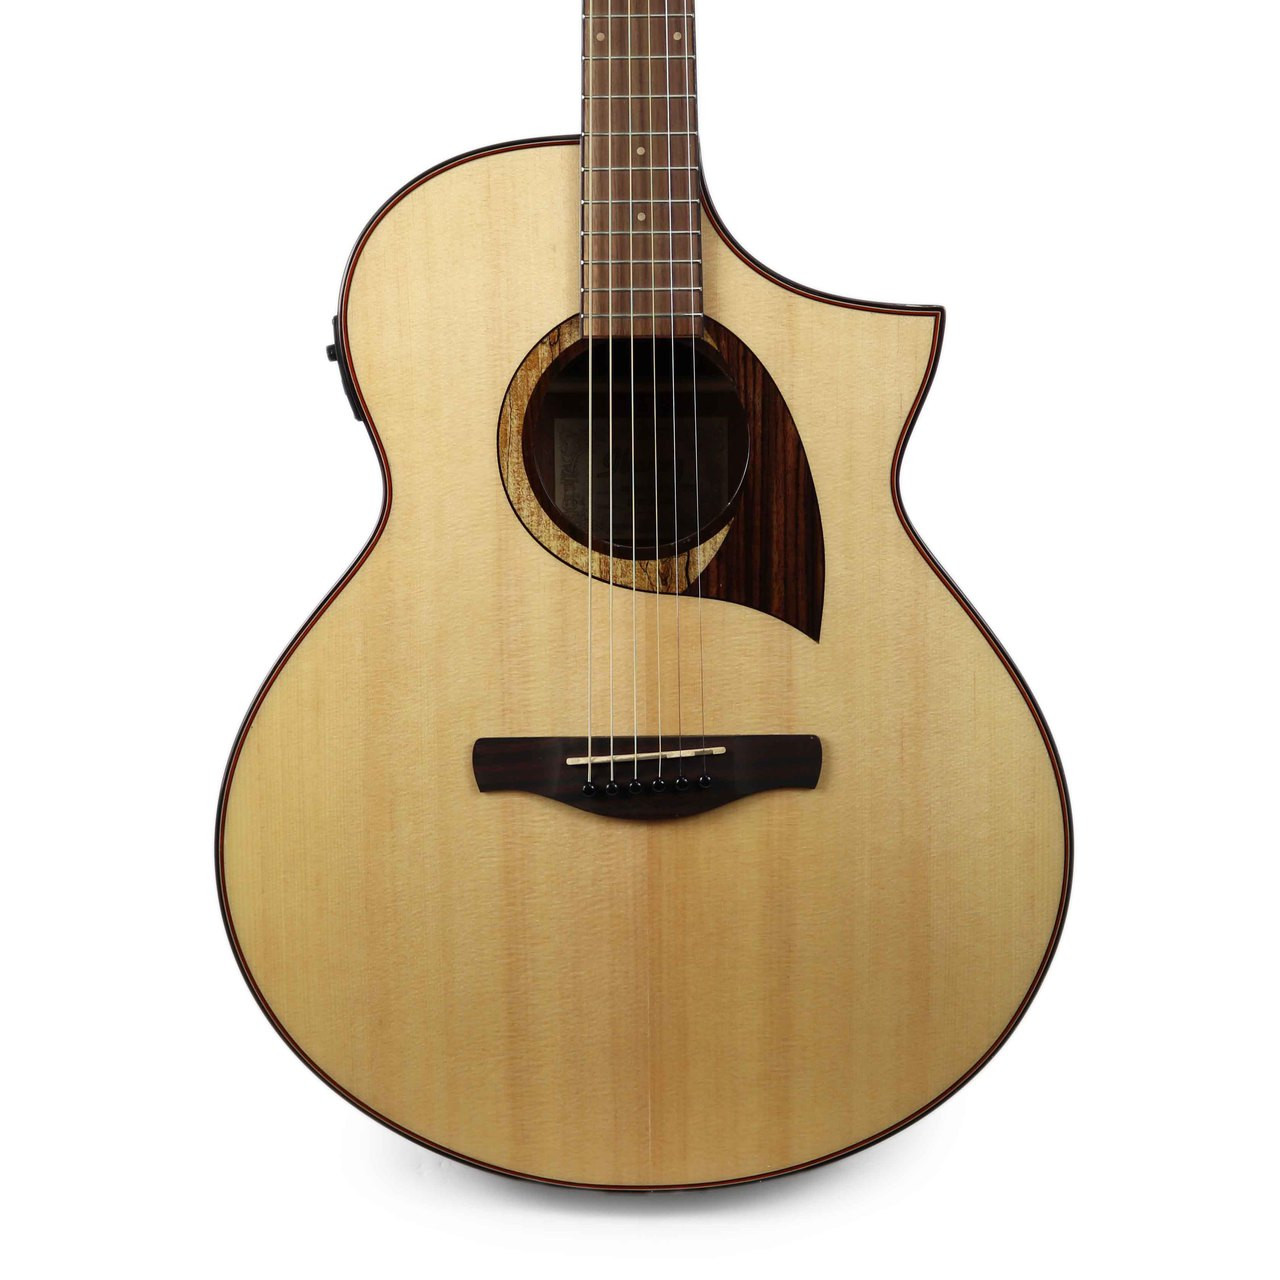 Ibanez Aew22cdnt Cordia Exotic Wood Acoustic Electric Guitar In Natural